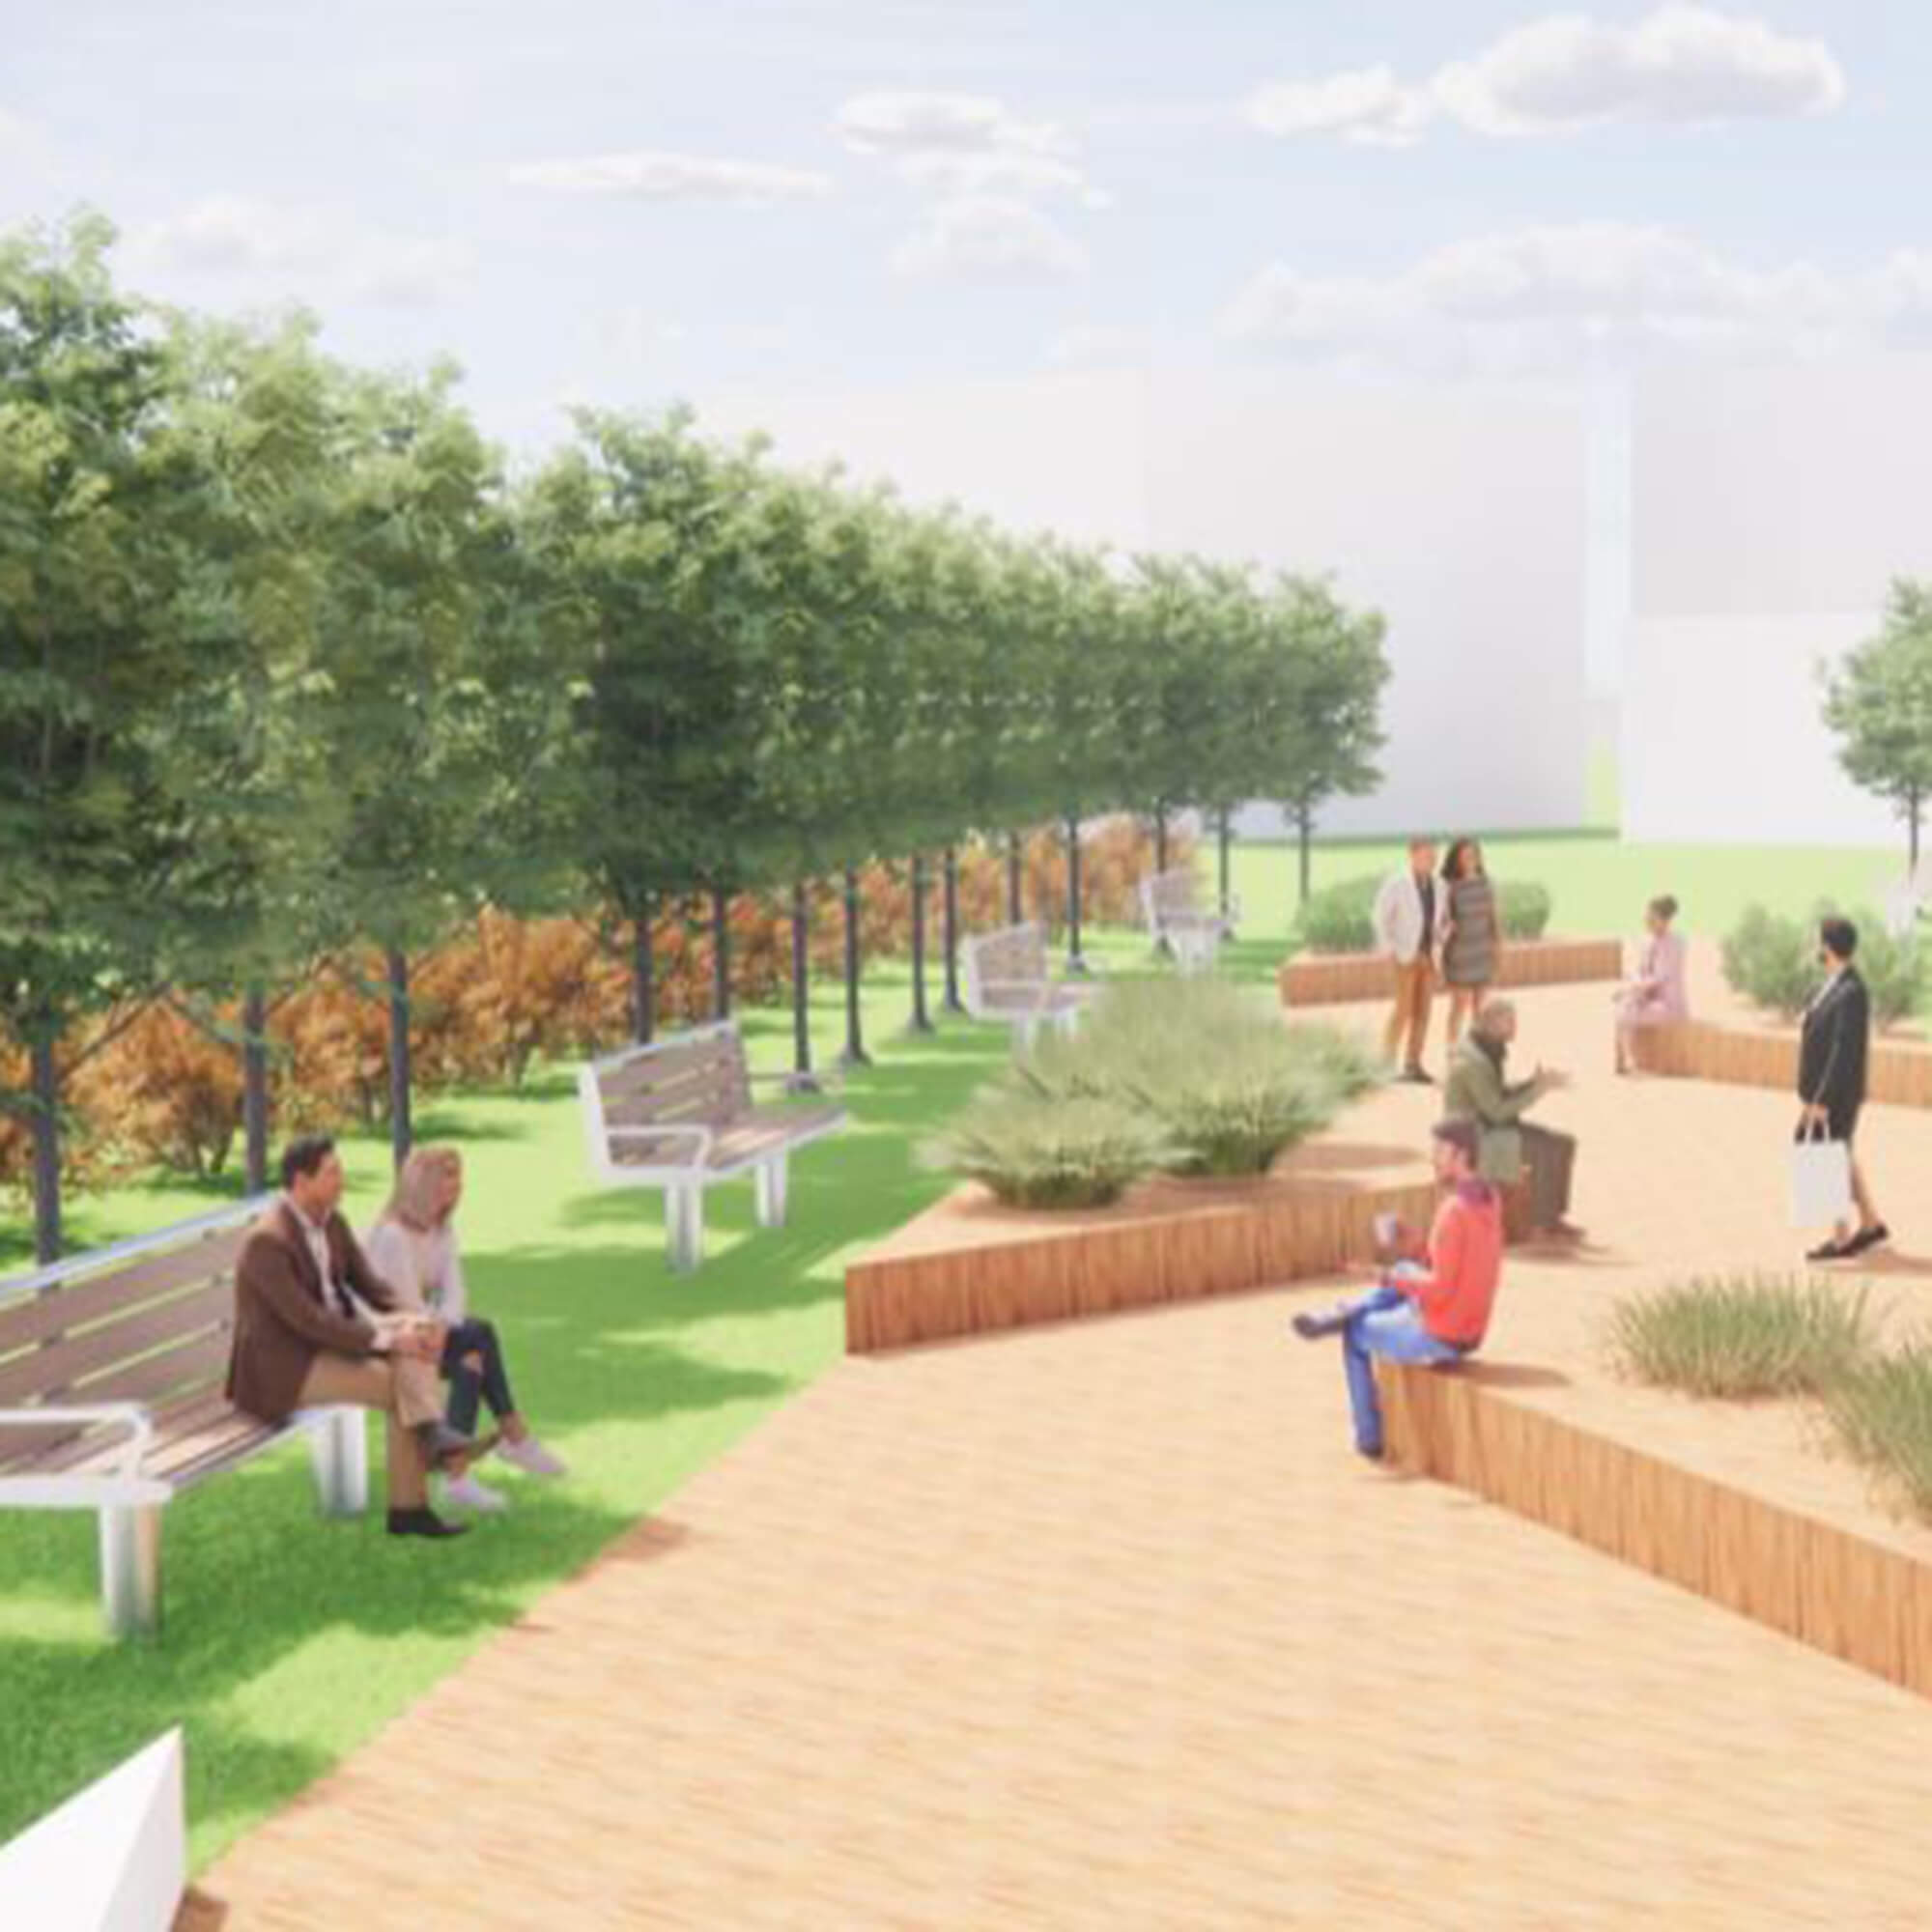 Drawing of an outside area with people sitting in the sun.